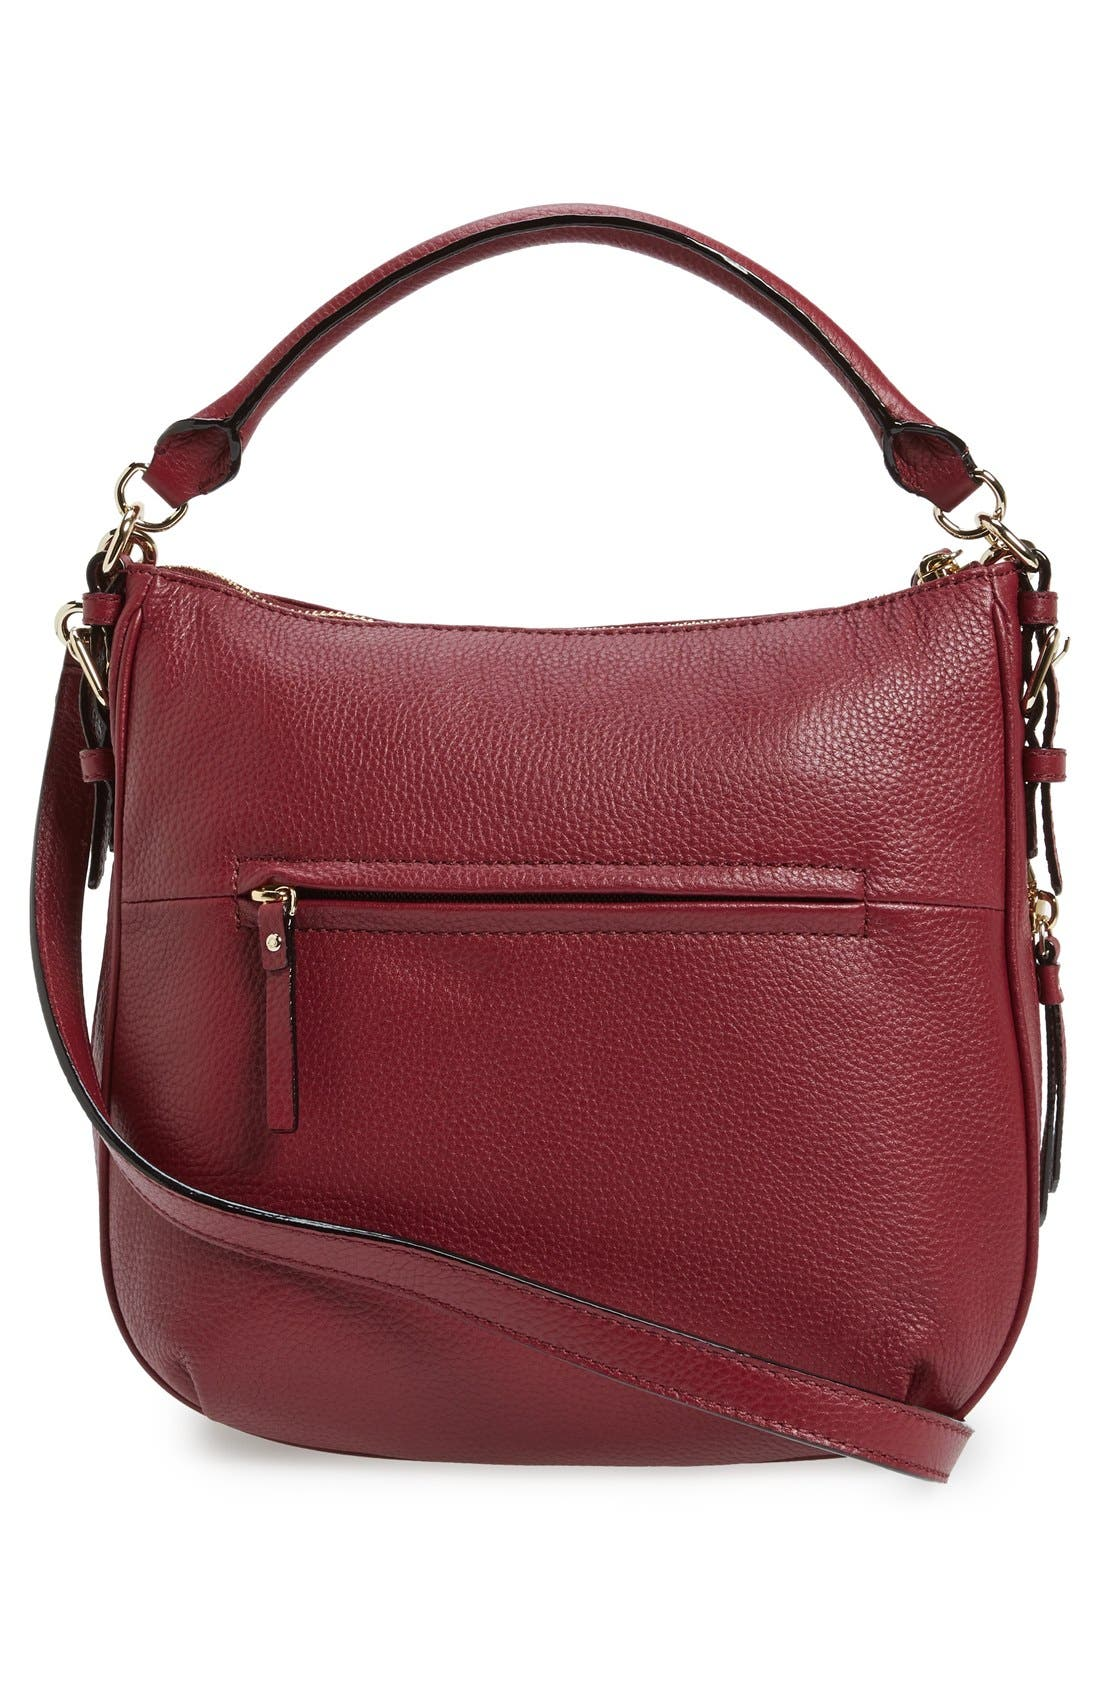 Alternate Image 3  - kate spade new york 'cobble hill - small ella' leather satchel